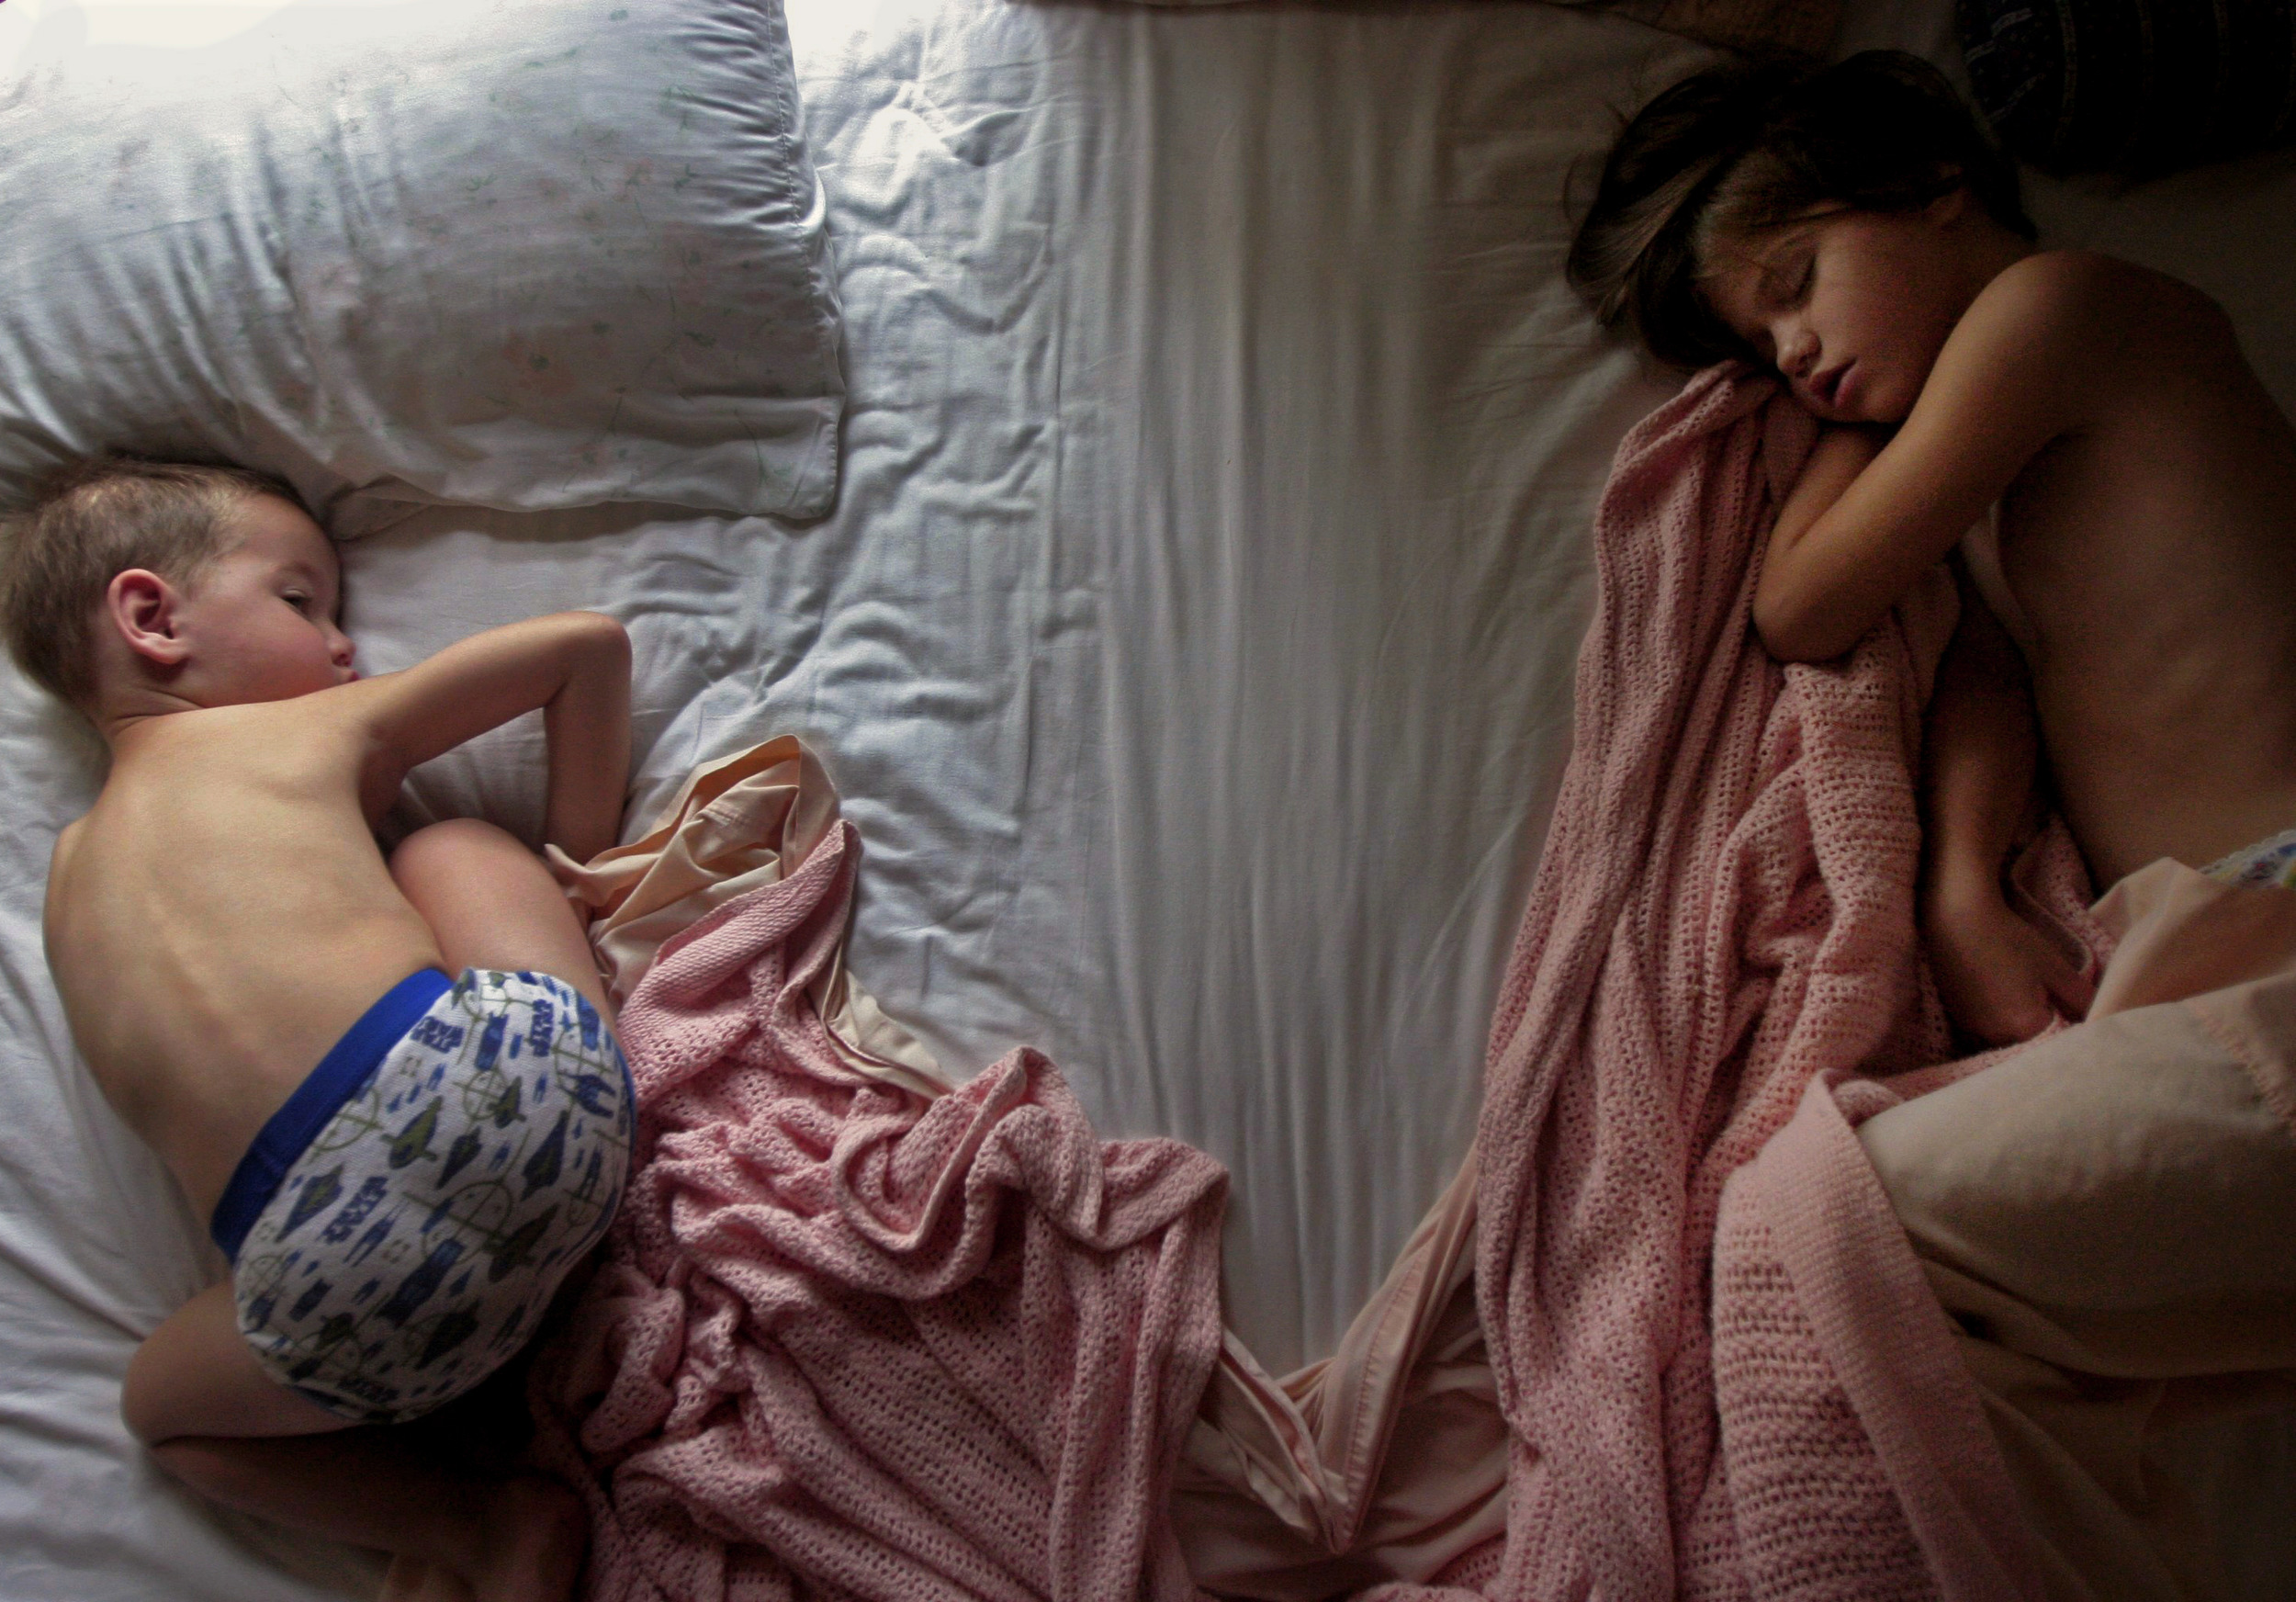 Anna Stewart Burdette and her brother Tibor wake up in the morning light in their parents' bed.